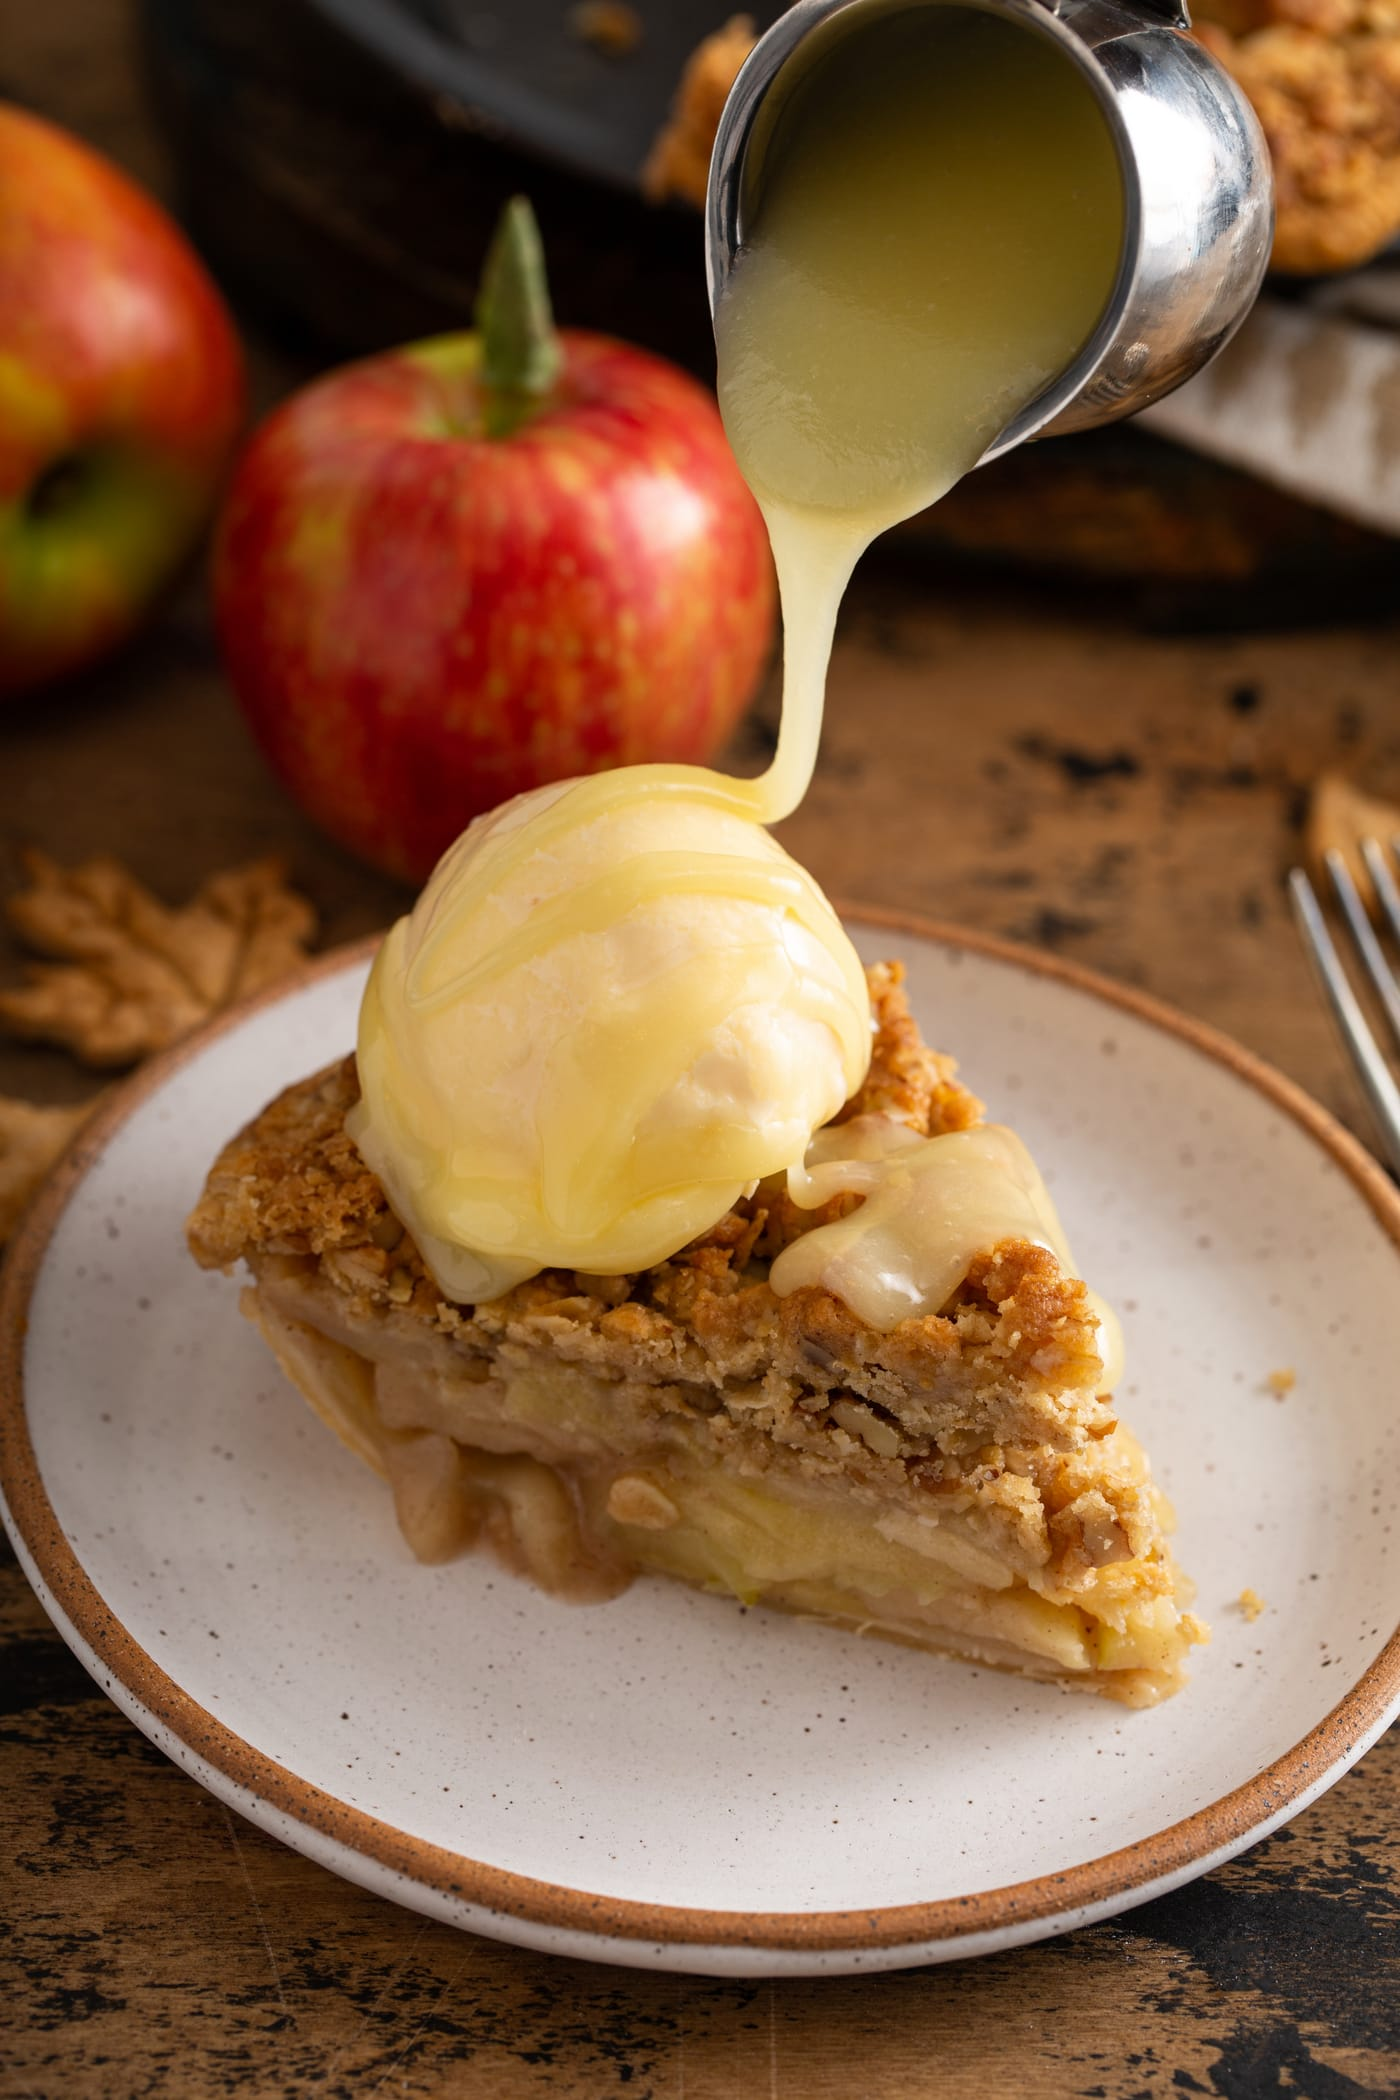 A slice of Dutch apple pie with a scoop of ice cream on top. White chocolate cheese sauce is being poured over the top of the ice cream. A red apple is in the background.